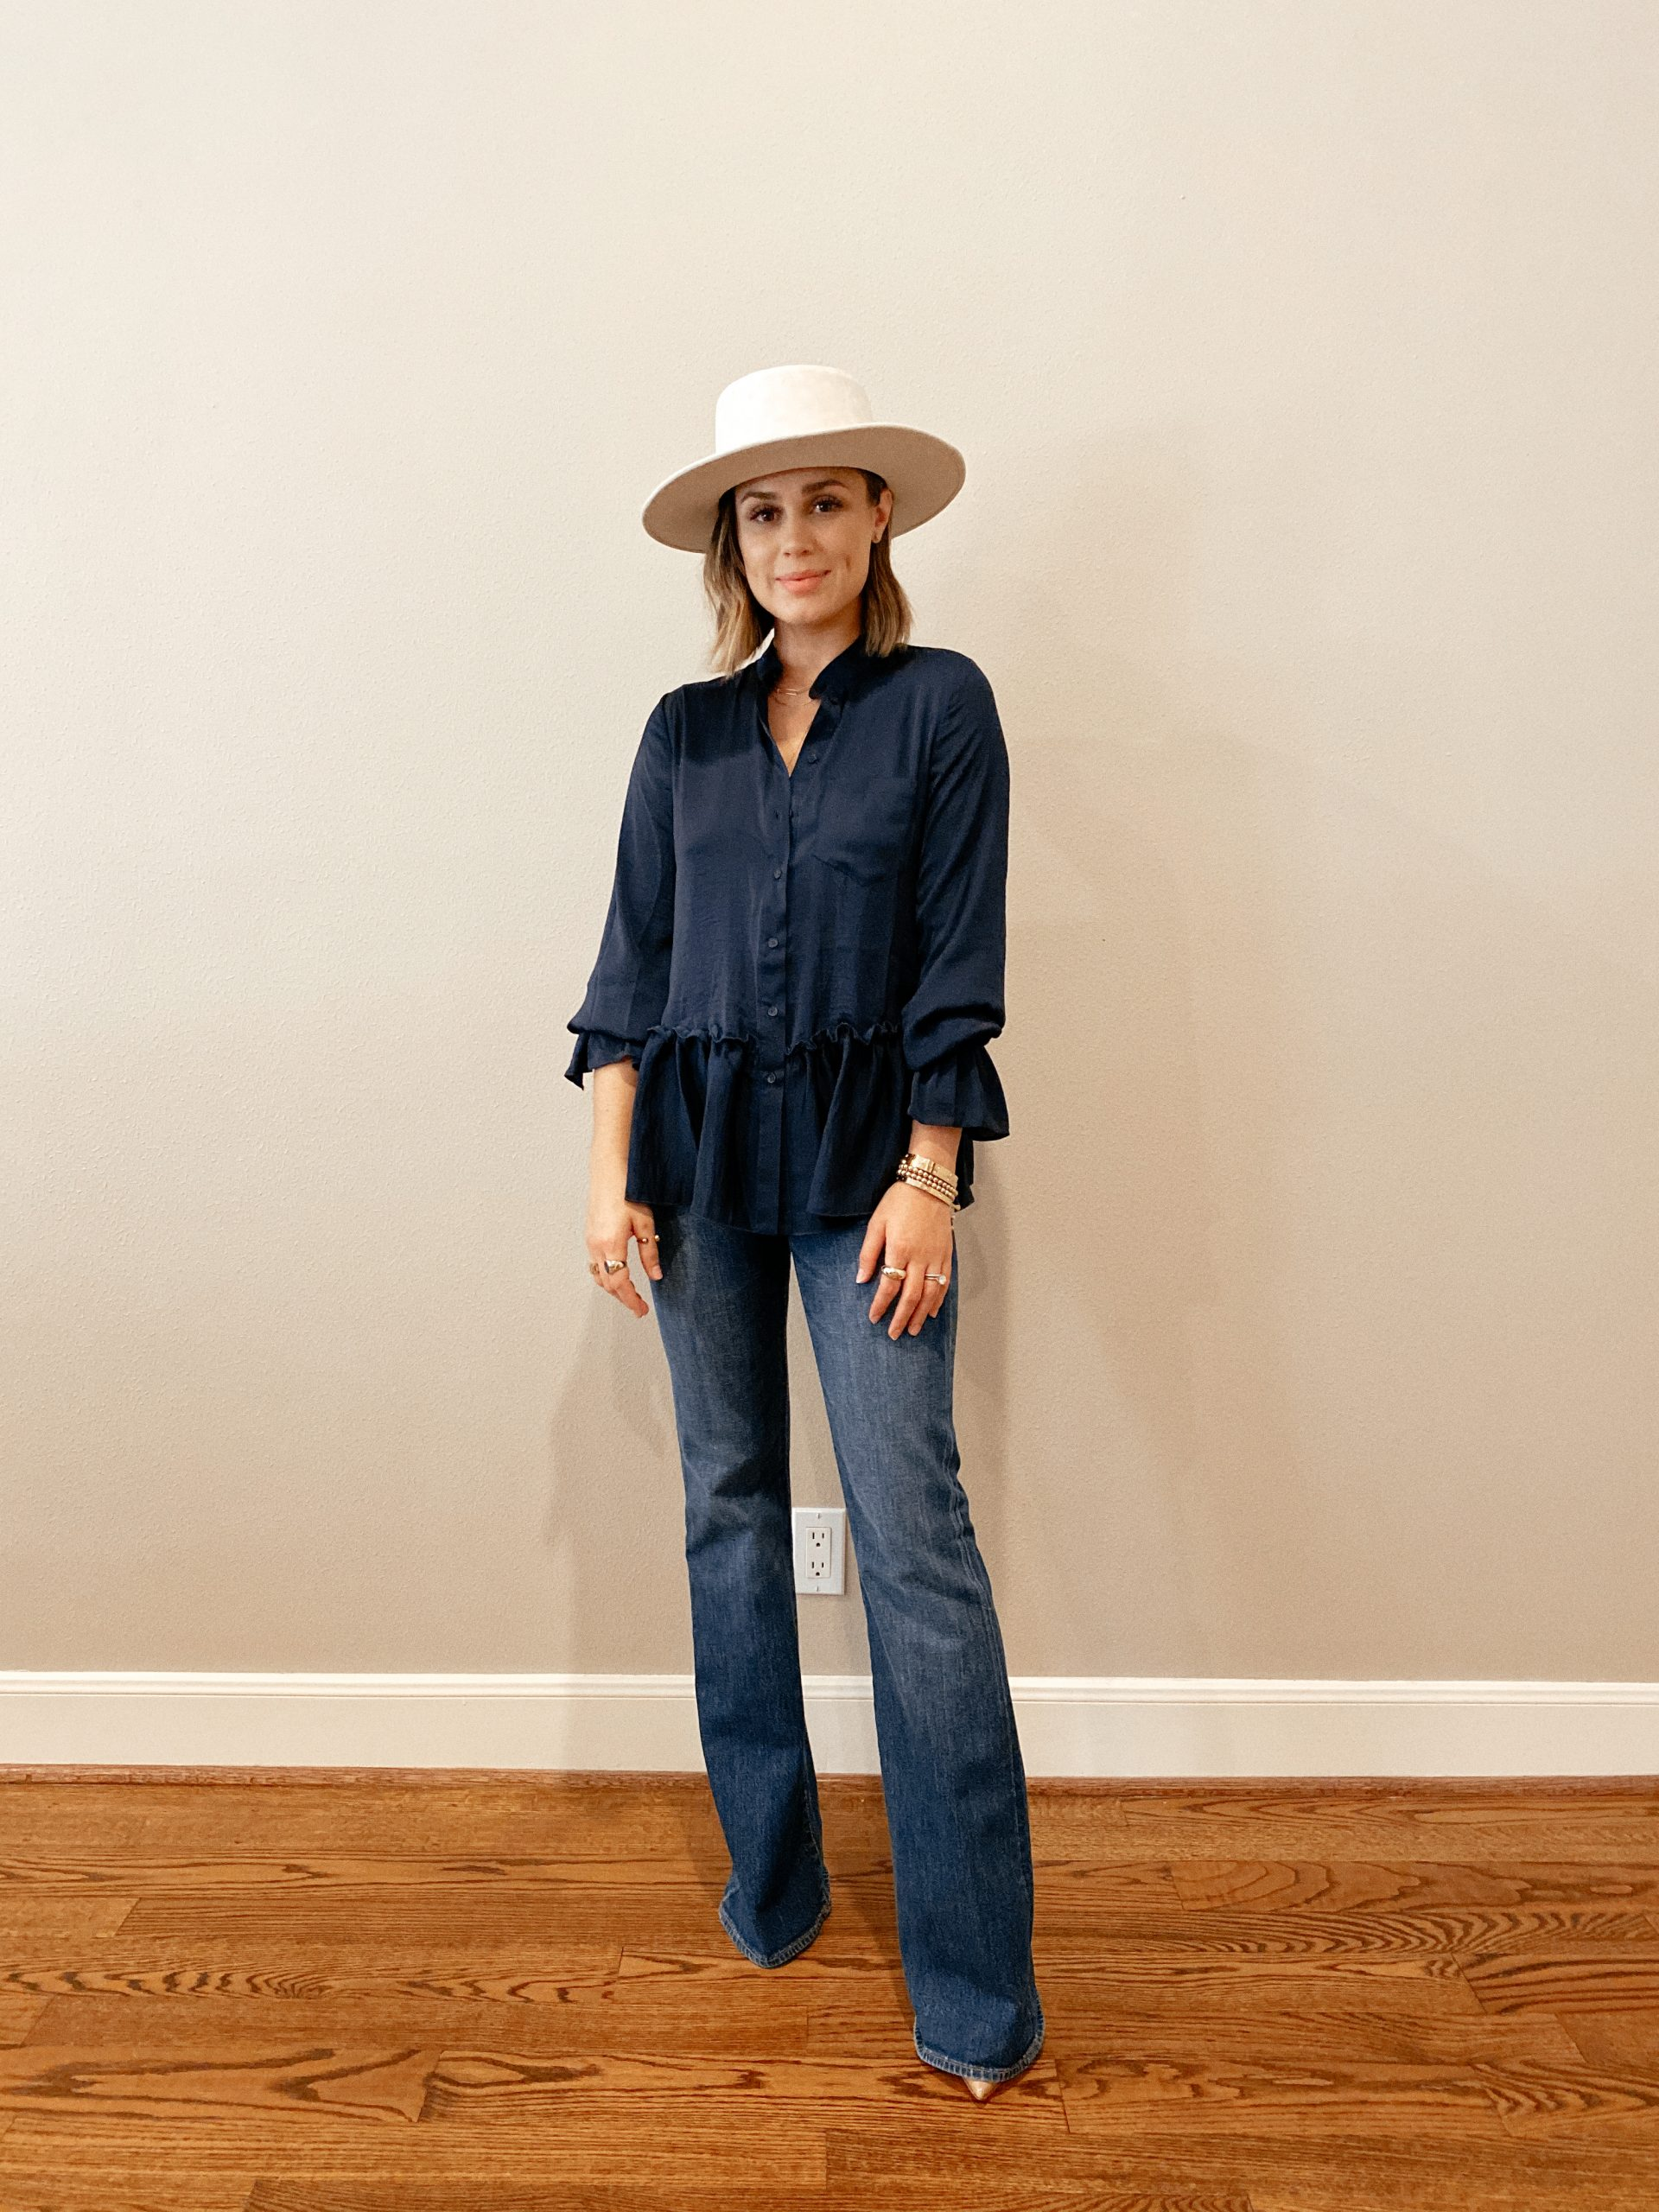 Elly Brown wears high-waisted flared denim from J.Crew